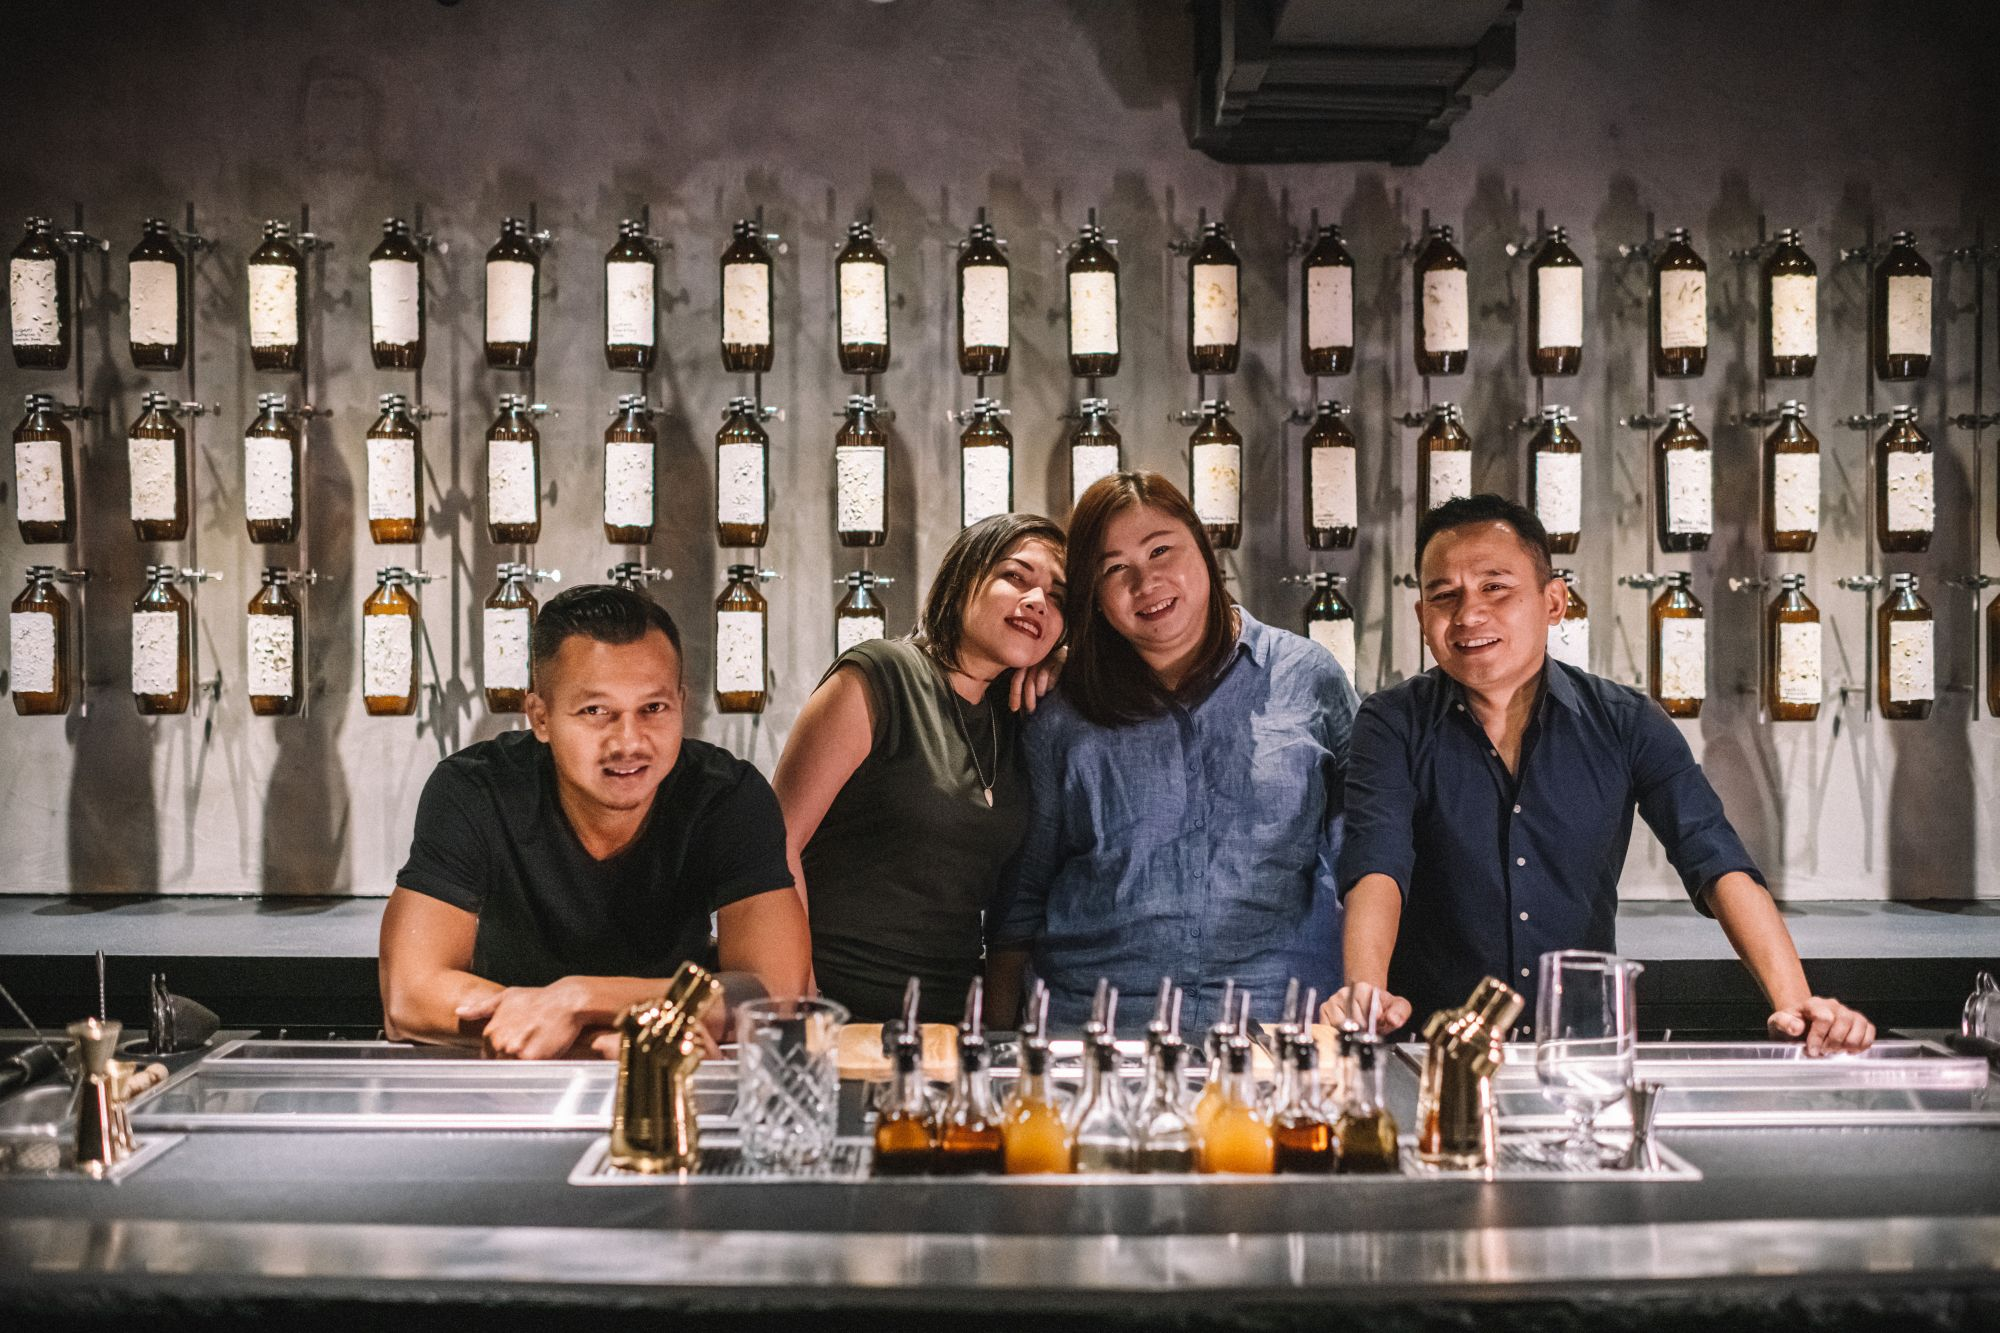 These Co-Founders Created Hong Kong's First Sustainable Bar, Penicillin